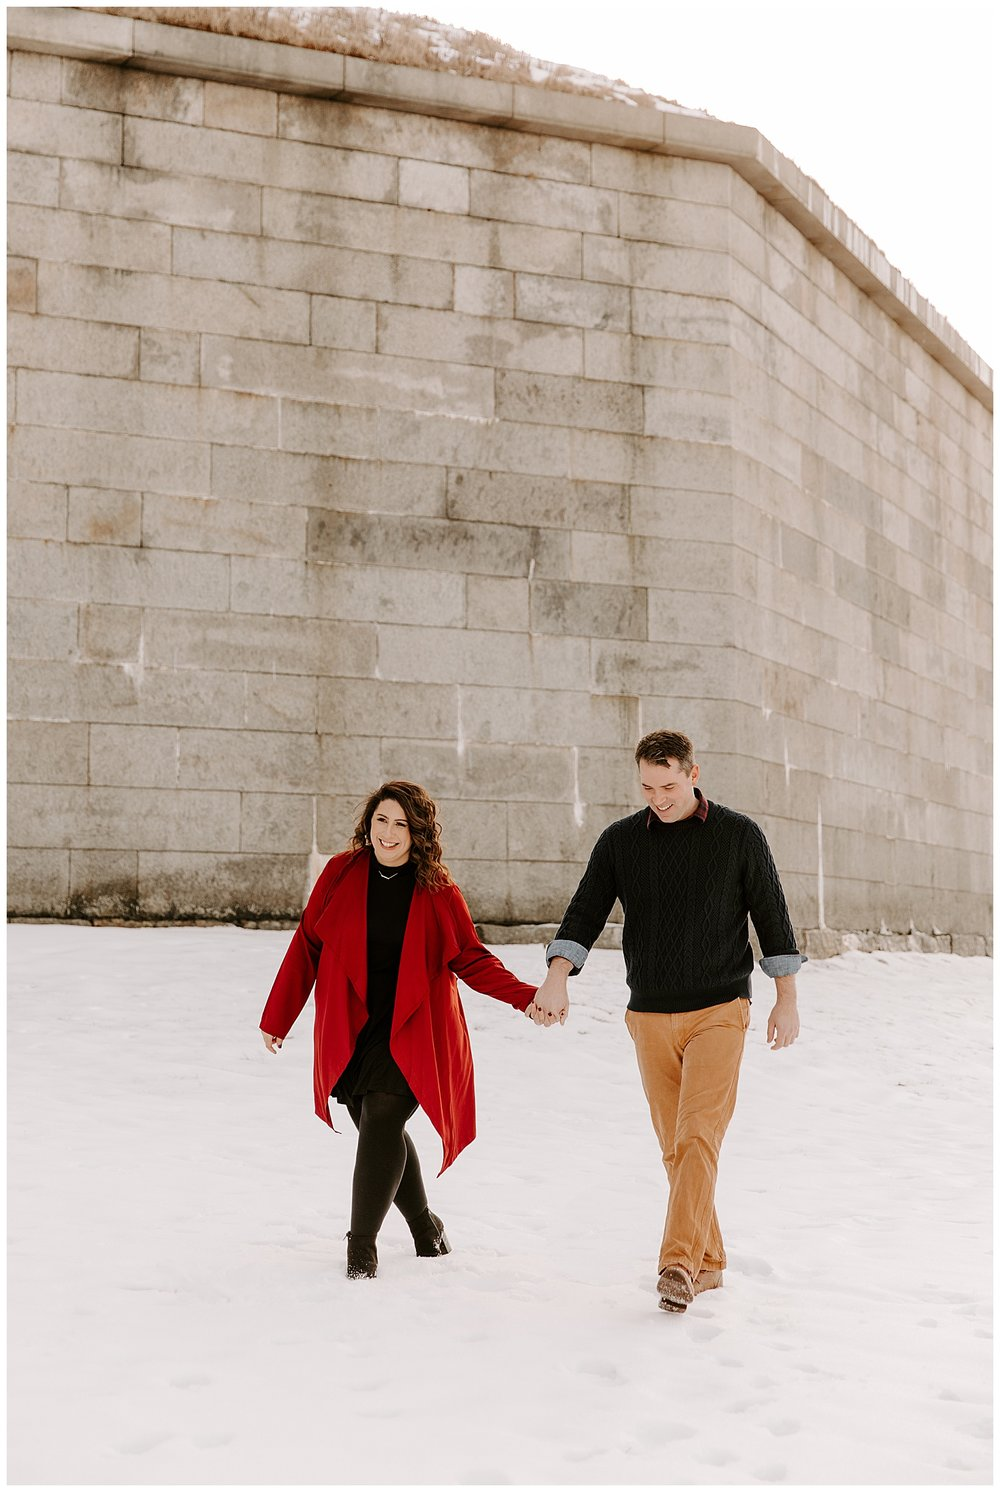 kevin-danielle-snow-winter-engagement-session-castle-island-boston02.jpg